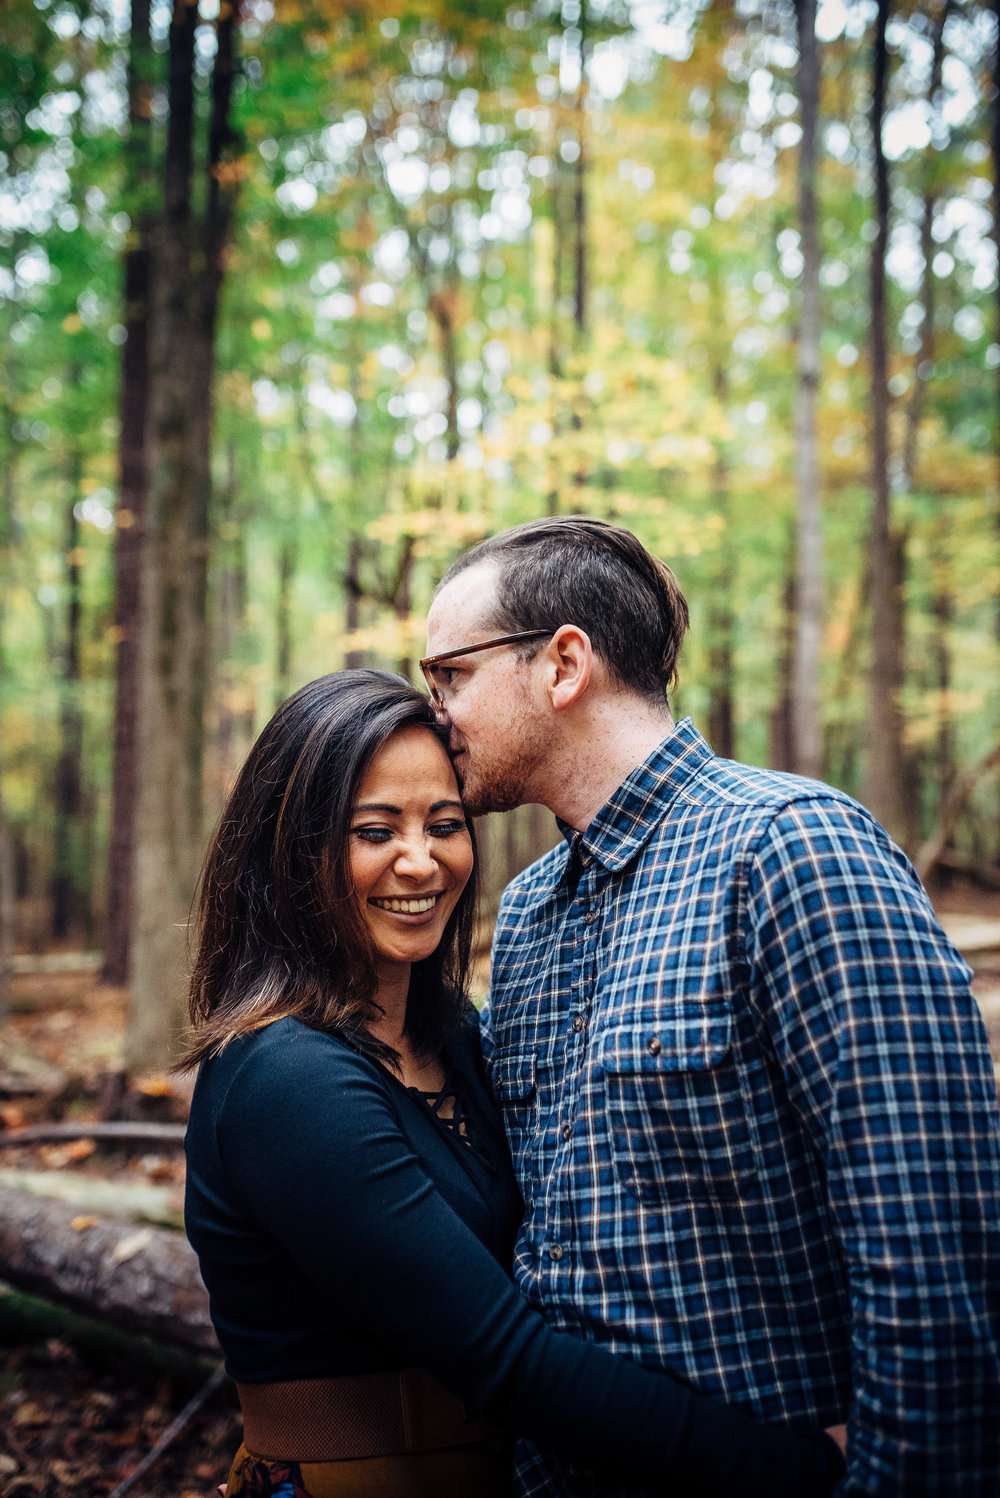 Umstead Engagement - Raleigh Wedding Photographer - North Carolina Wedding Photographer